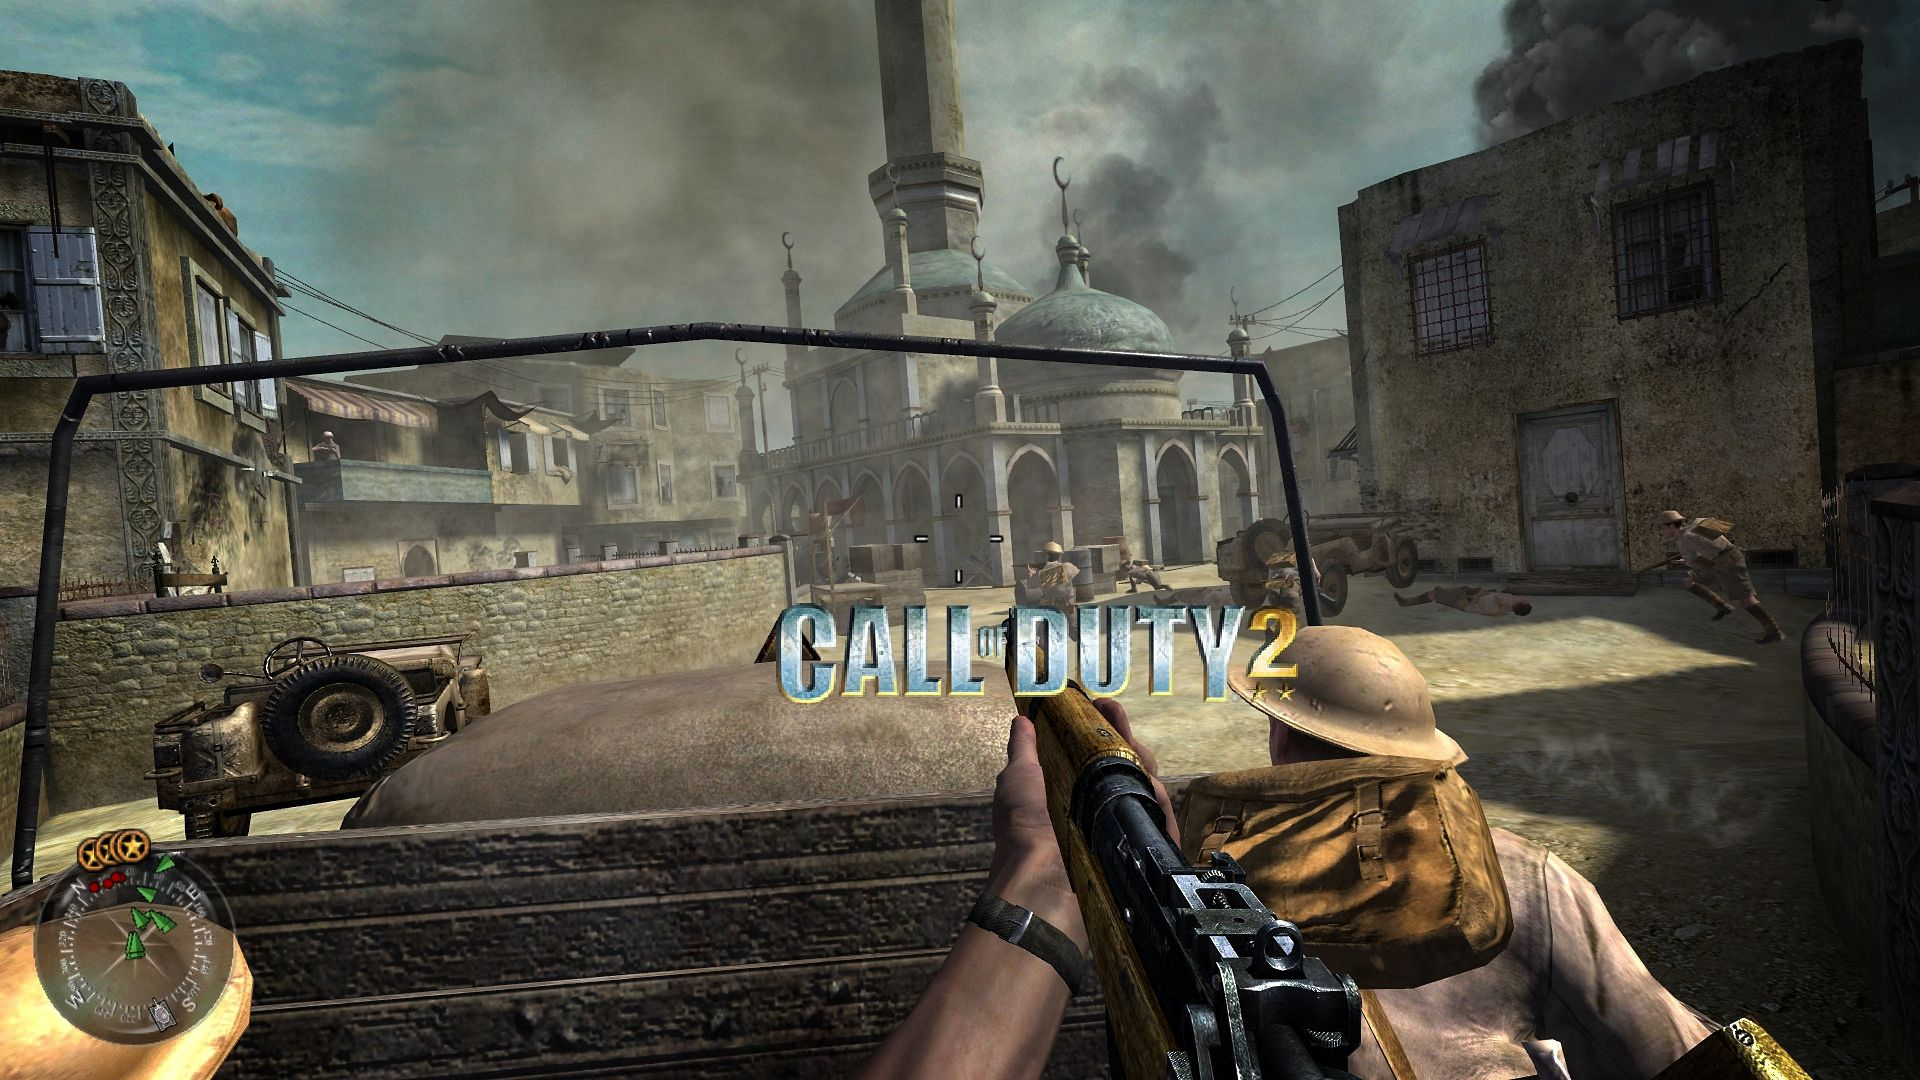 call of duty demo